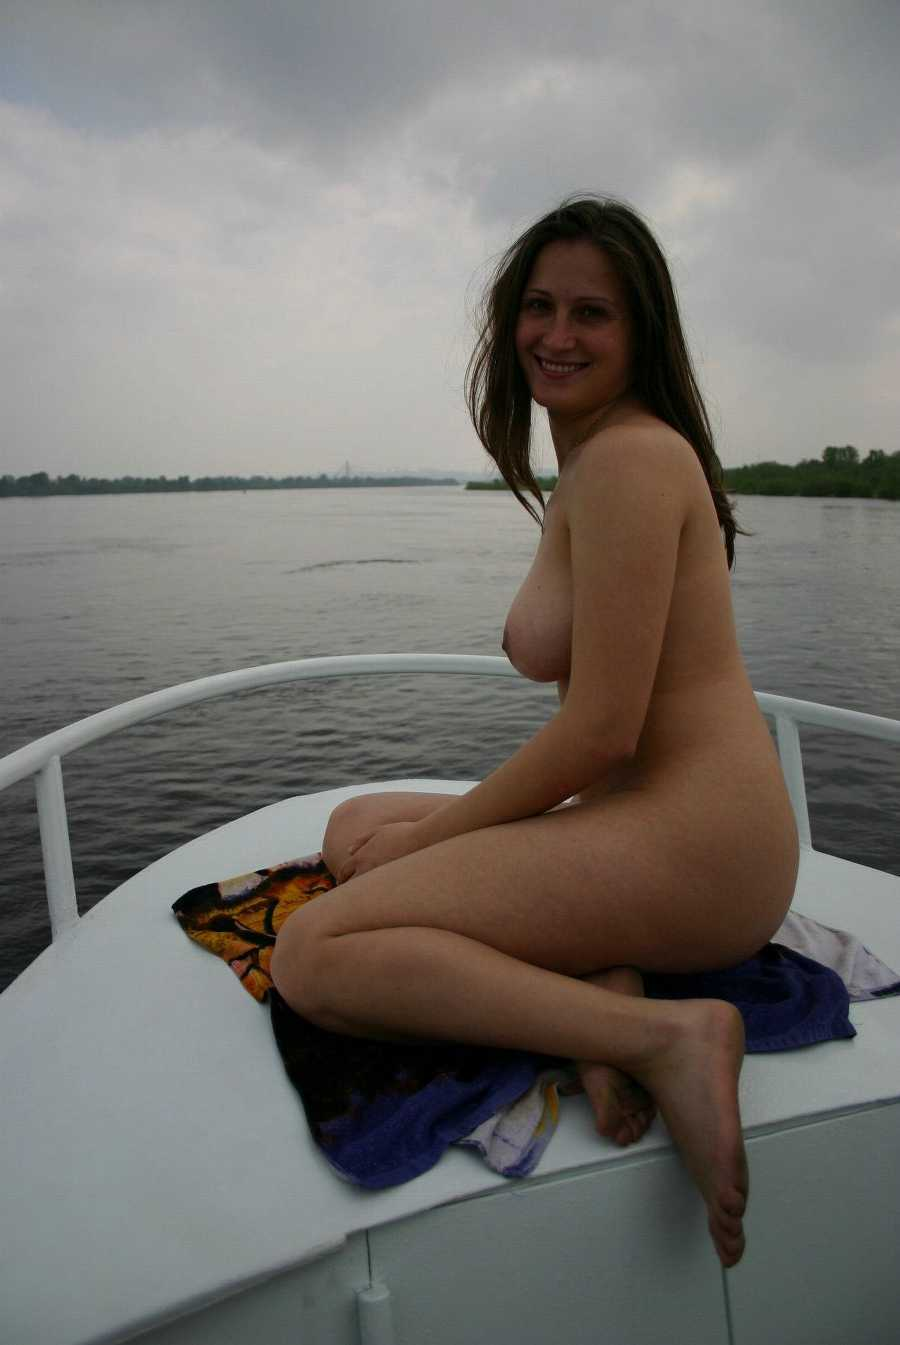 naked-chic-on-jet-ski-incredible-jack-rabbit-vibrator